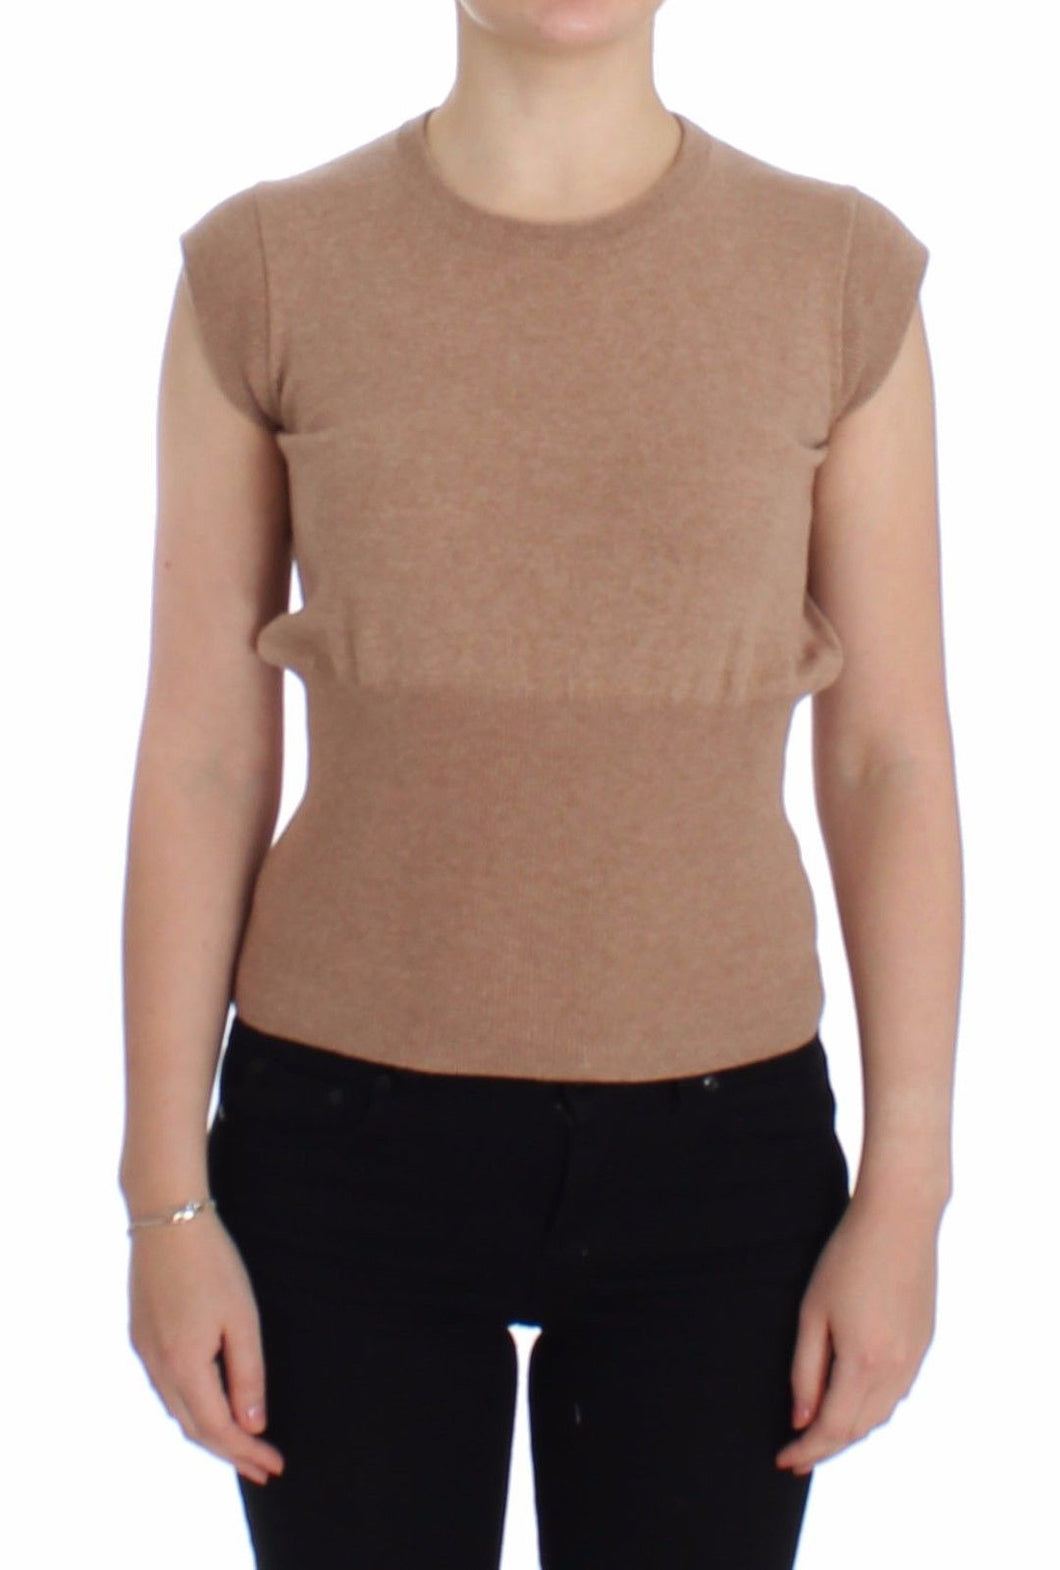 Beige Cashmere Knit Top Crewneck Sweater Vest